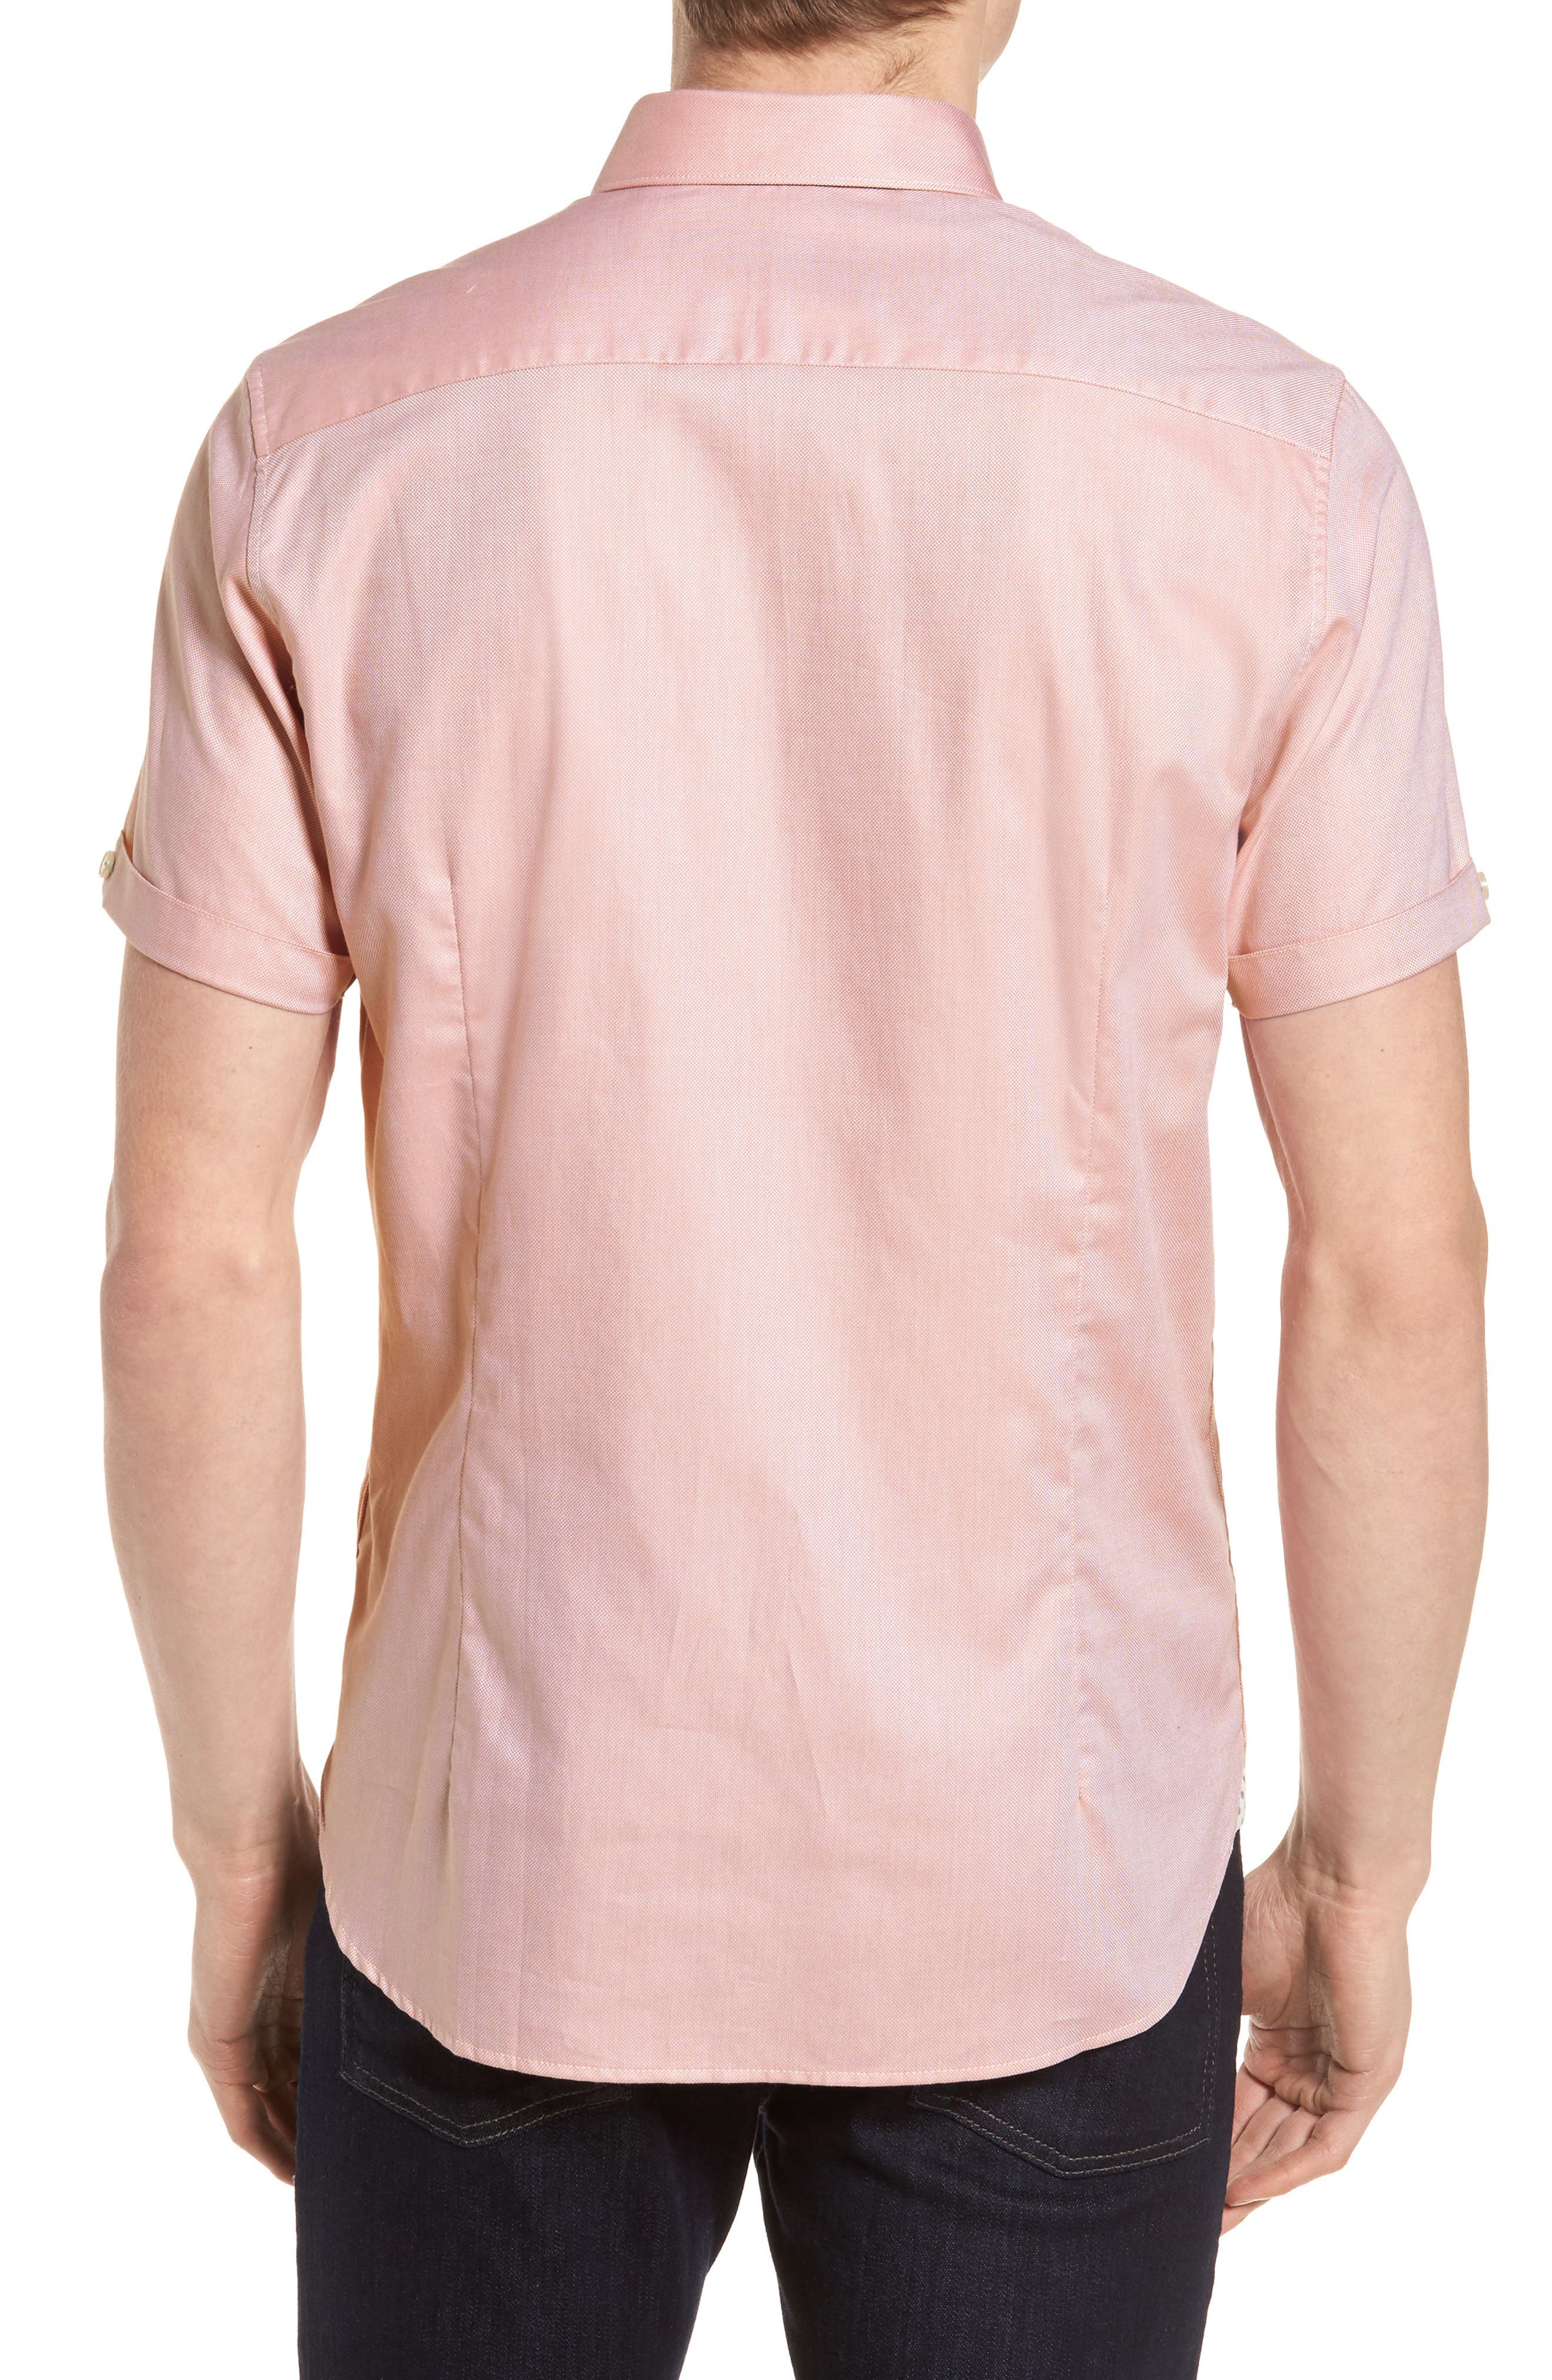 Wallo Trim Fit Short Sleeve Sport Shirt,                             Alternate thumbnail 3, color,                             Pink